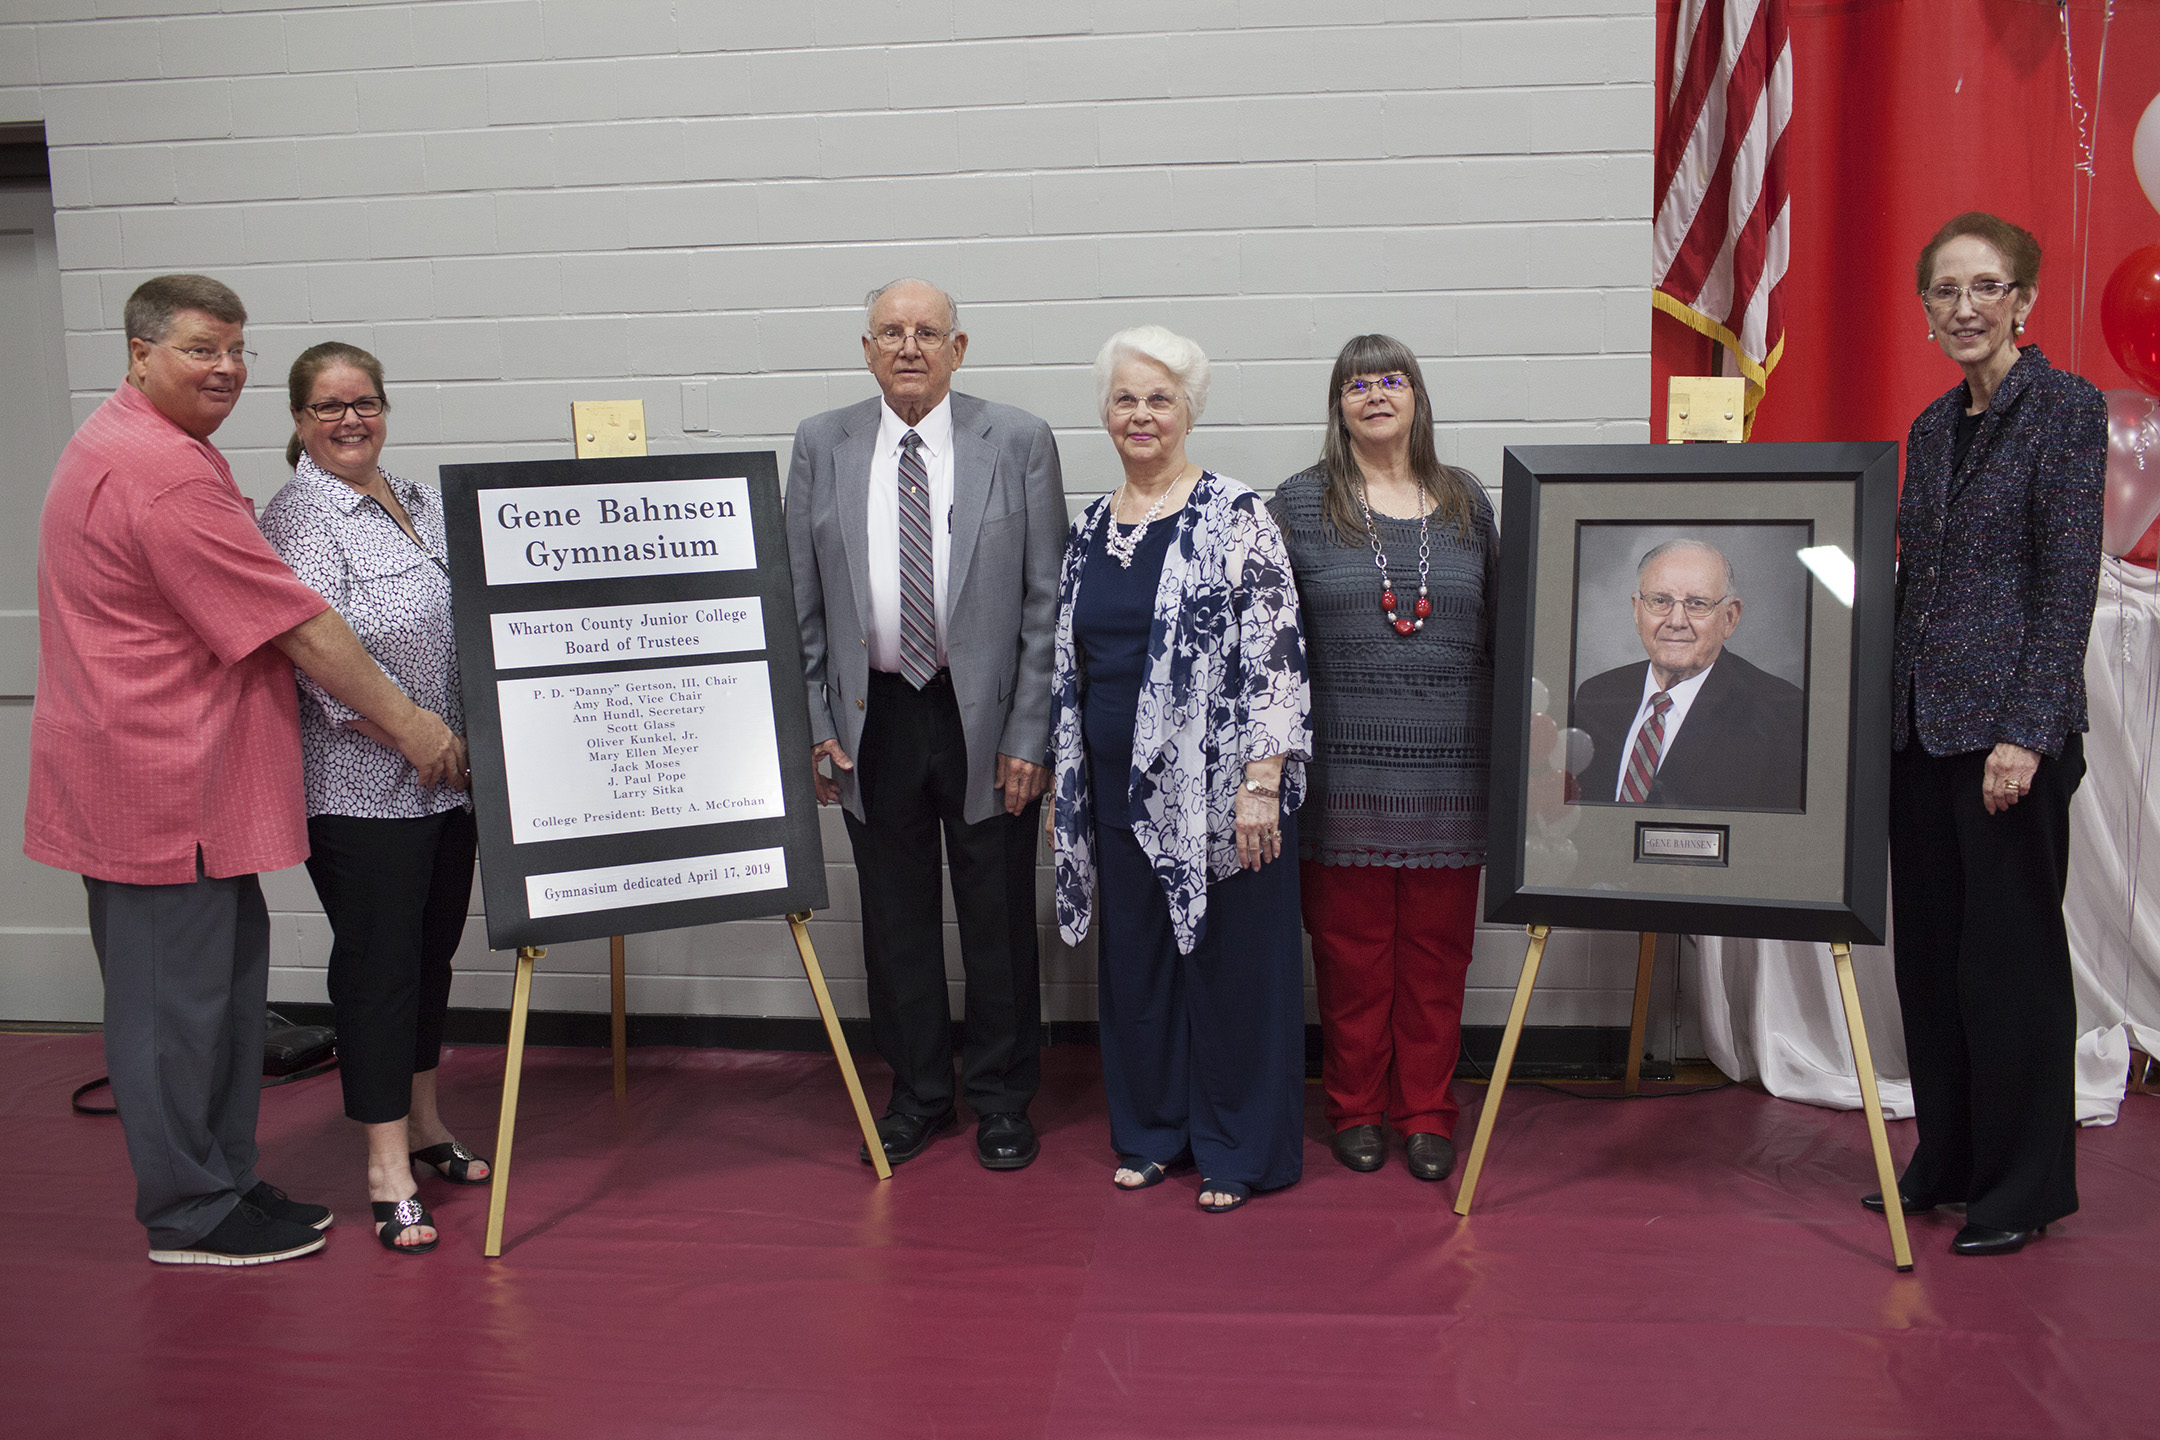 GENE BAHNSEN GYMNASIUM - WCJC names gym in honor of longtime athletic director and coach - plaque